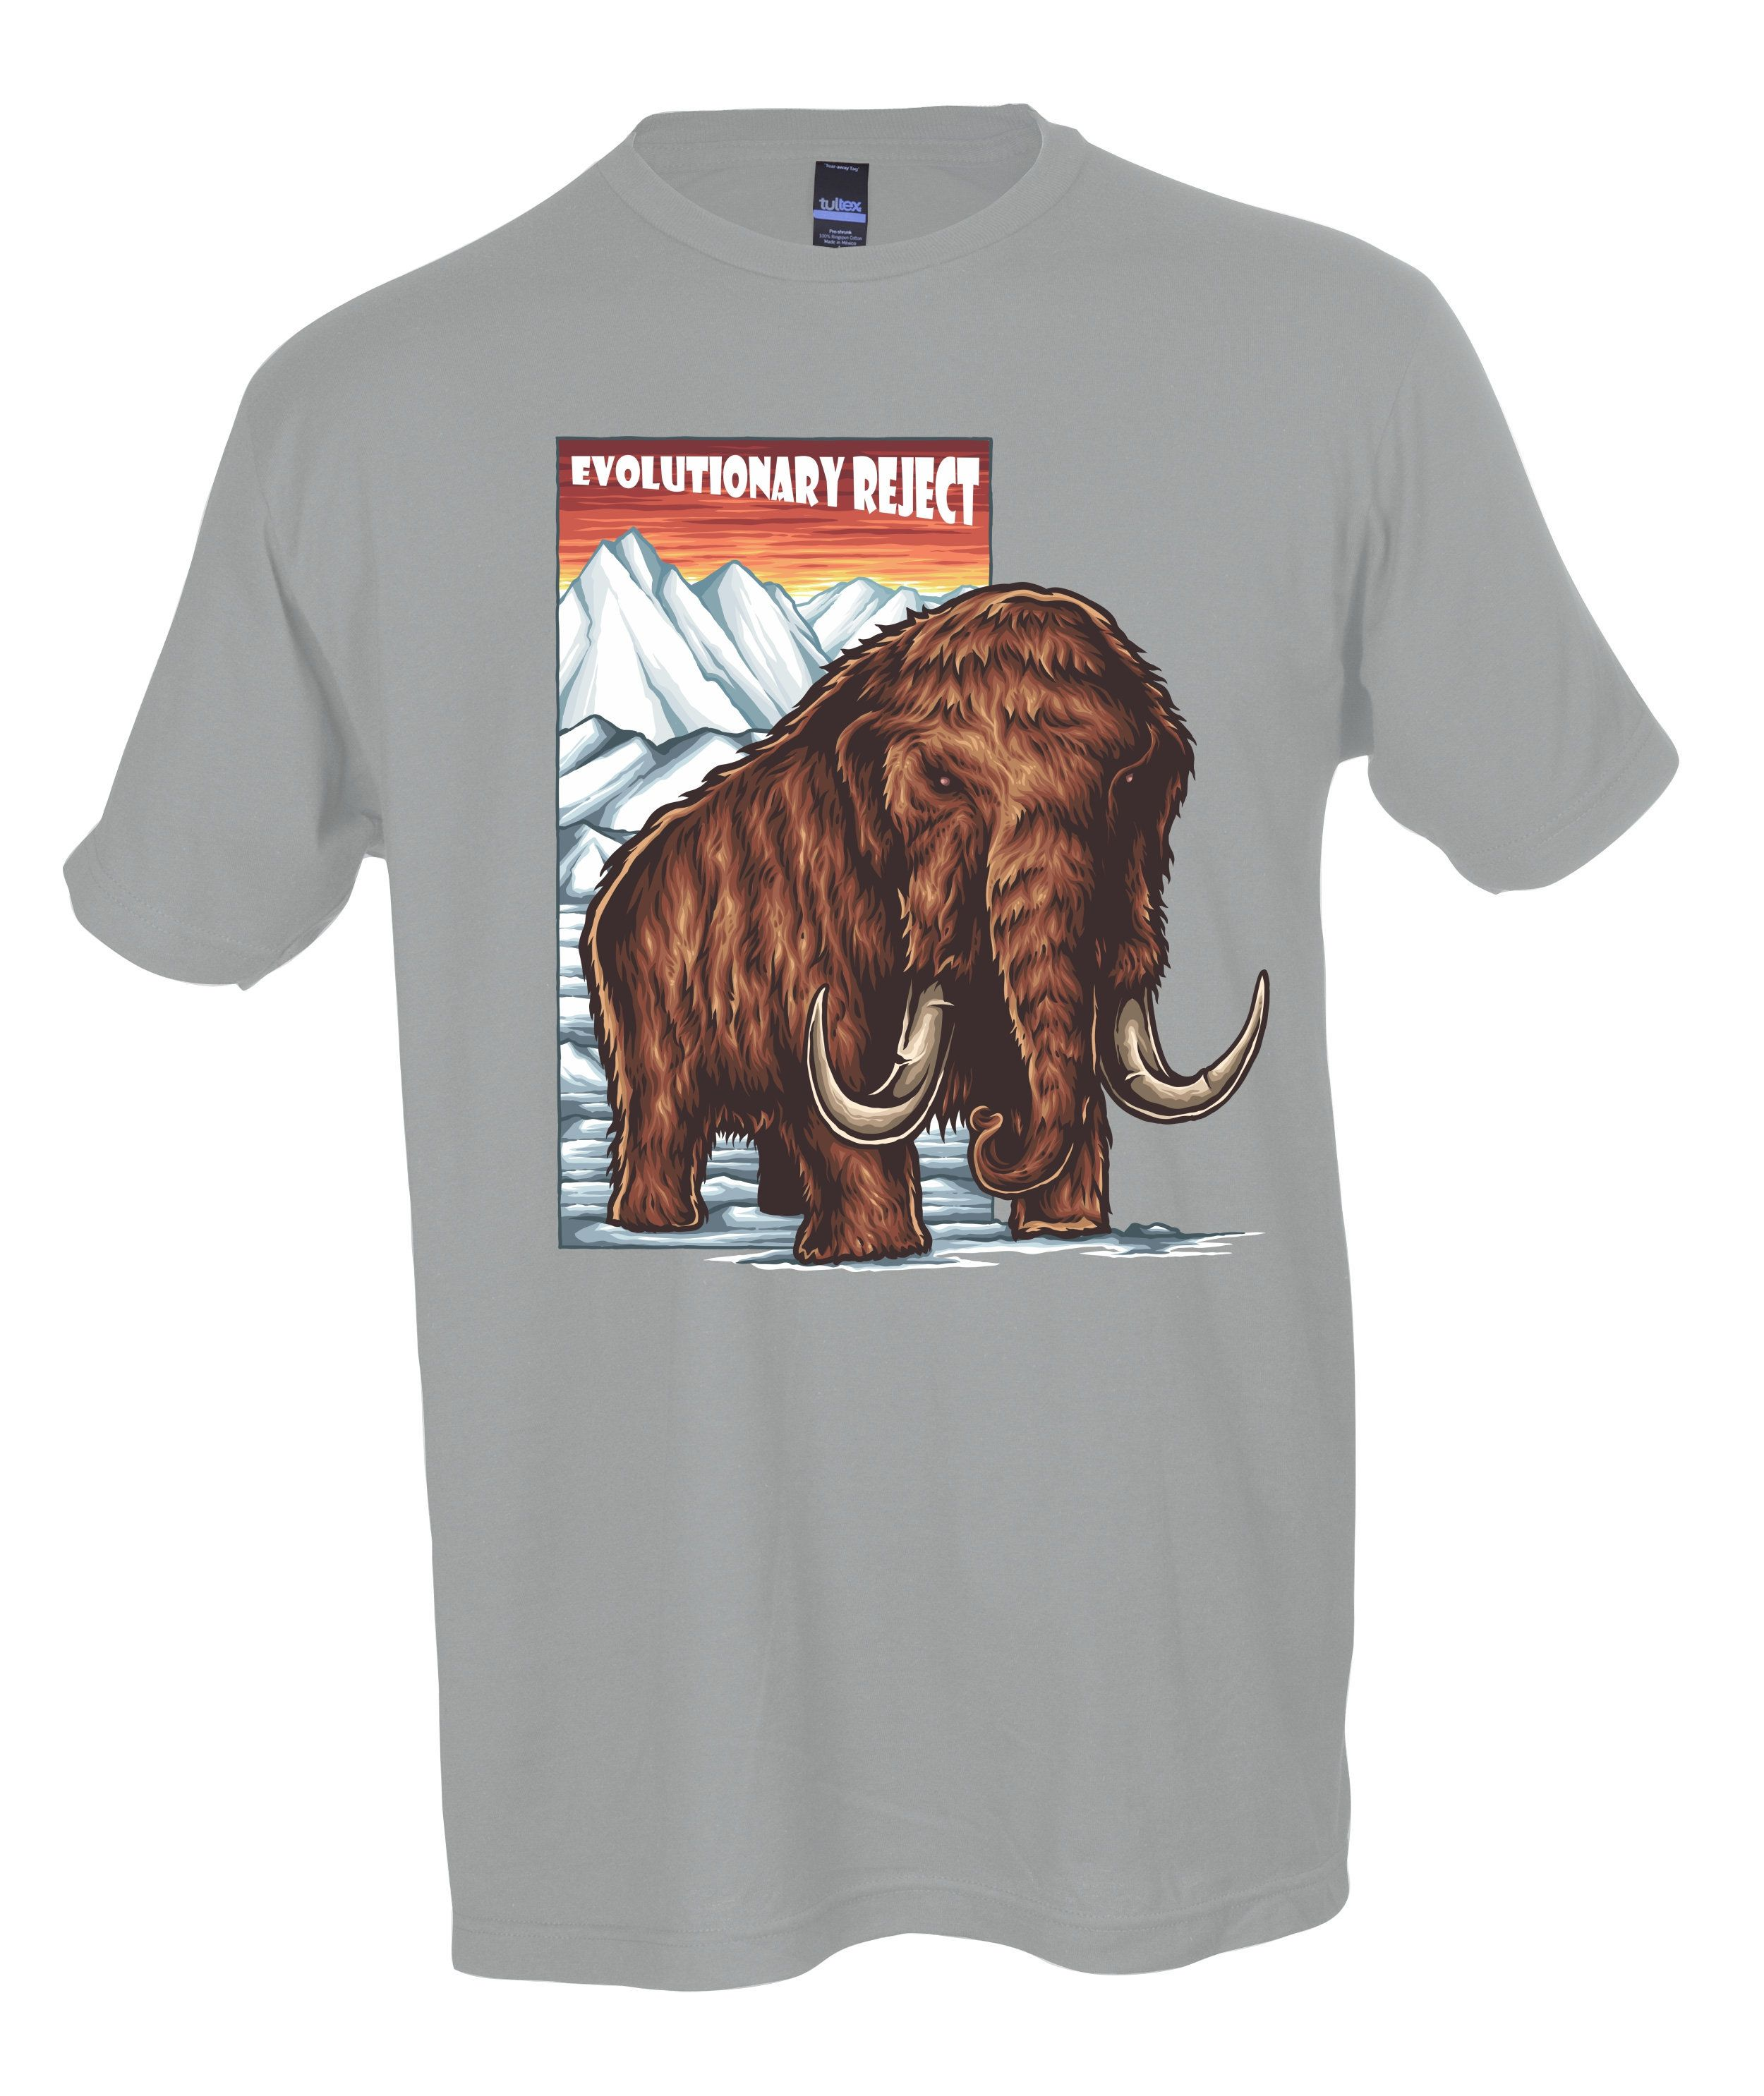 18d70c9796 Big Wooly Mammoth T shirt   Mongo Arts   Super Soft ECO Friendly Tultex    Widespread panic Lot T Shirt